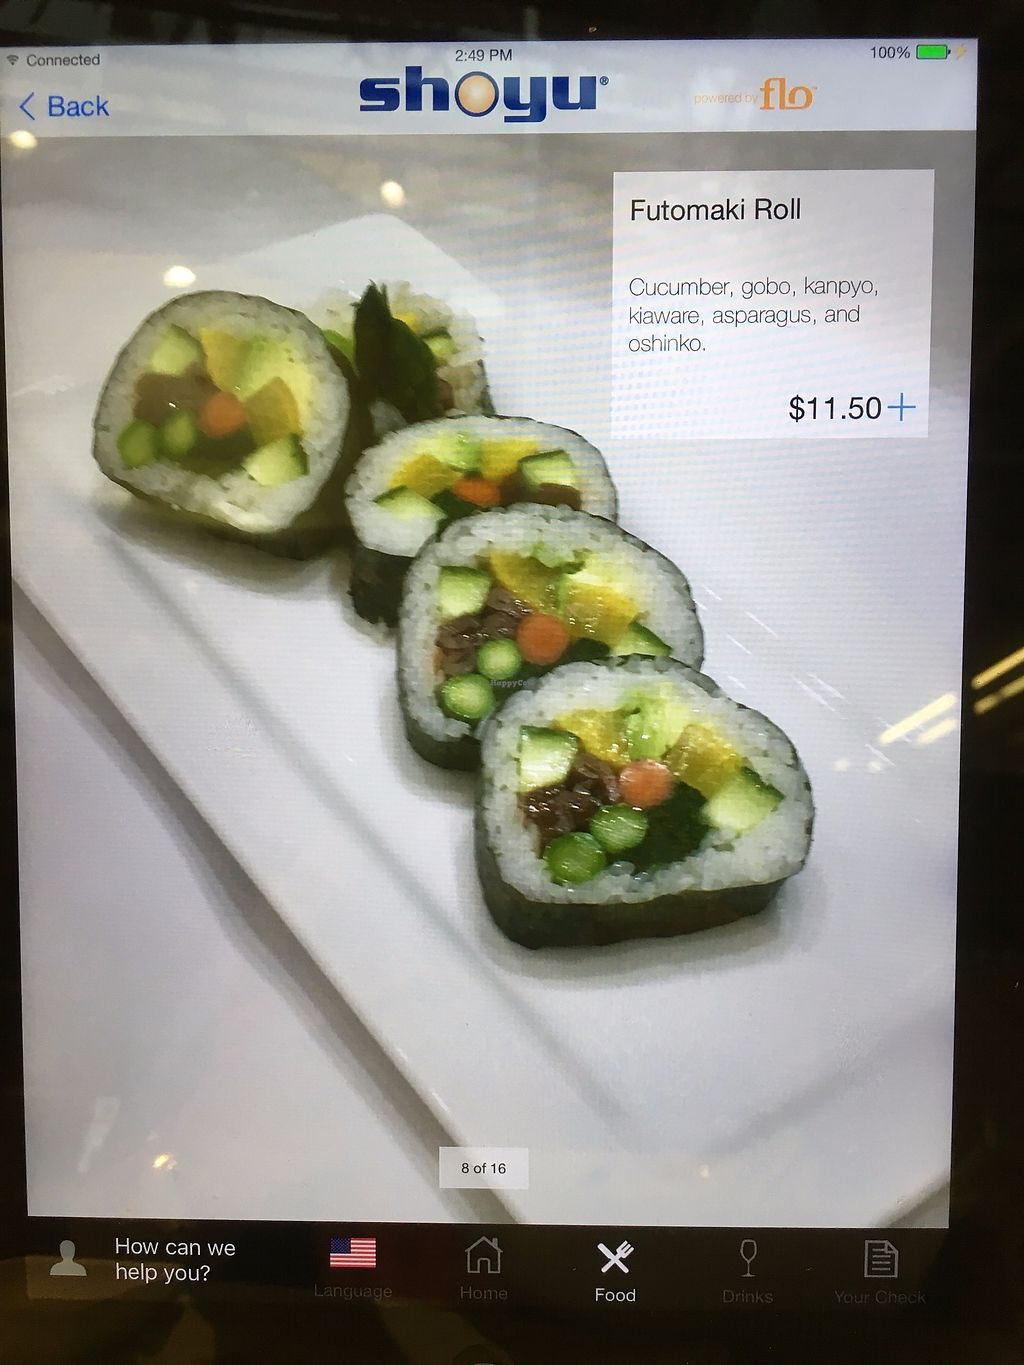 """Photo of Taste of Shoyu  by <a href=""""/members/profile/Durpadurp"""">Durpadurp</a> <br/>Futomaki Roll <br/> November 27, 2017  - <a href='/contact/abuse/image/34245/329880'>Report</a>"""